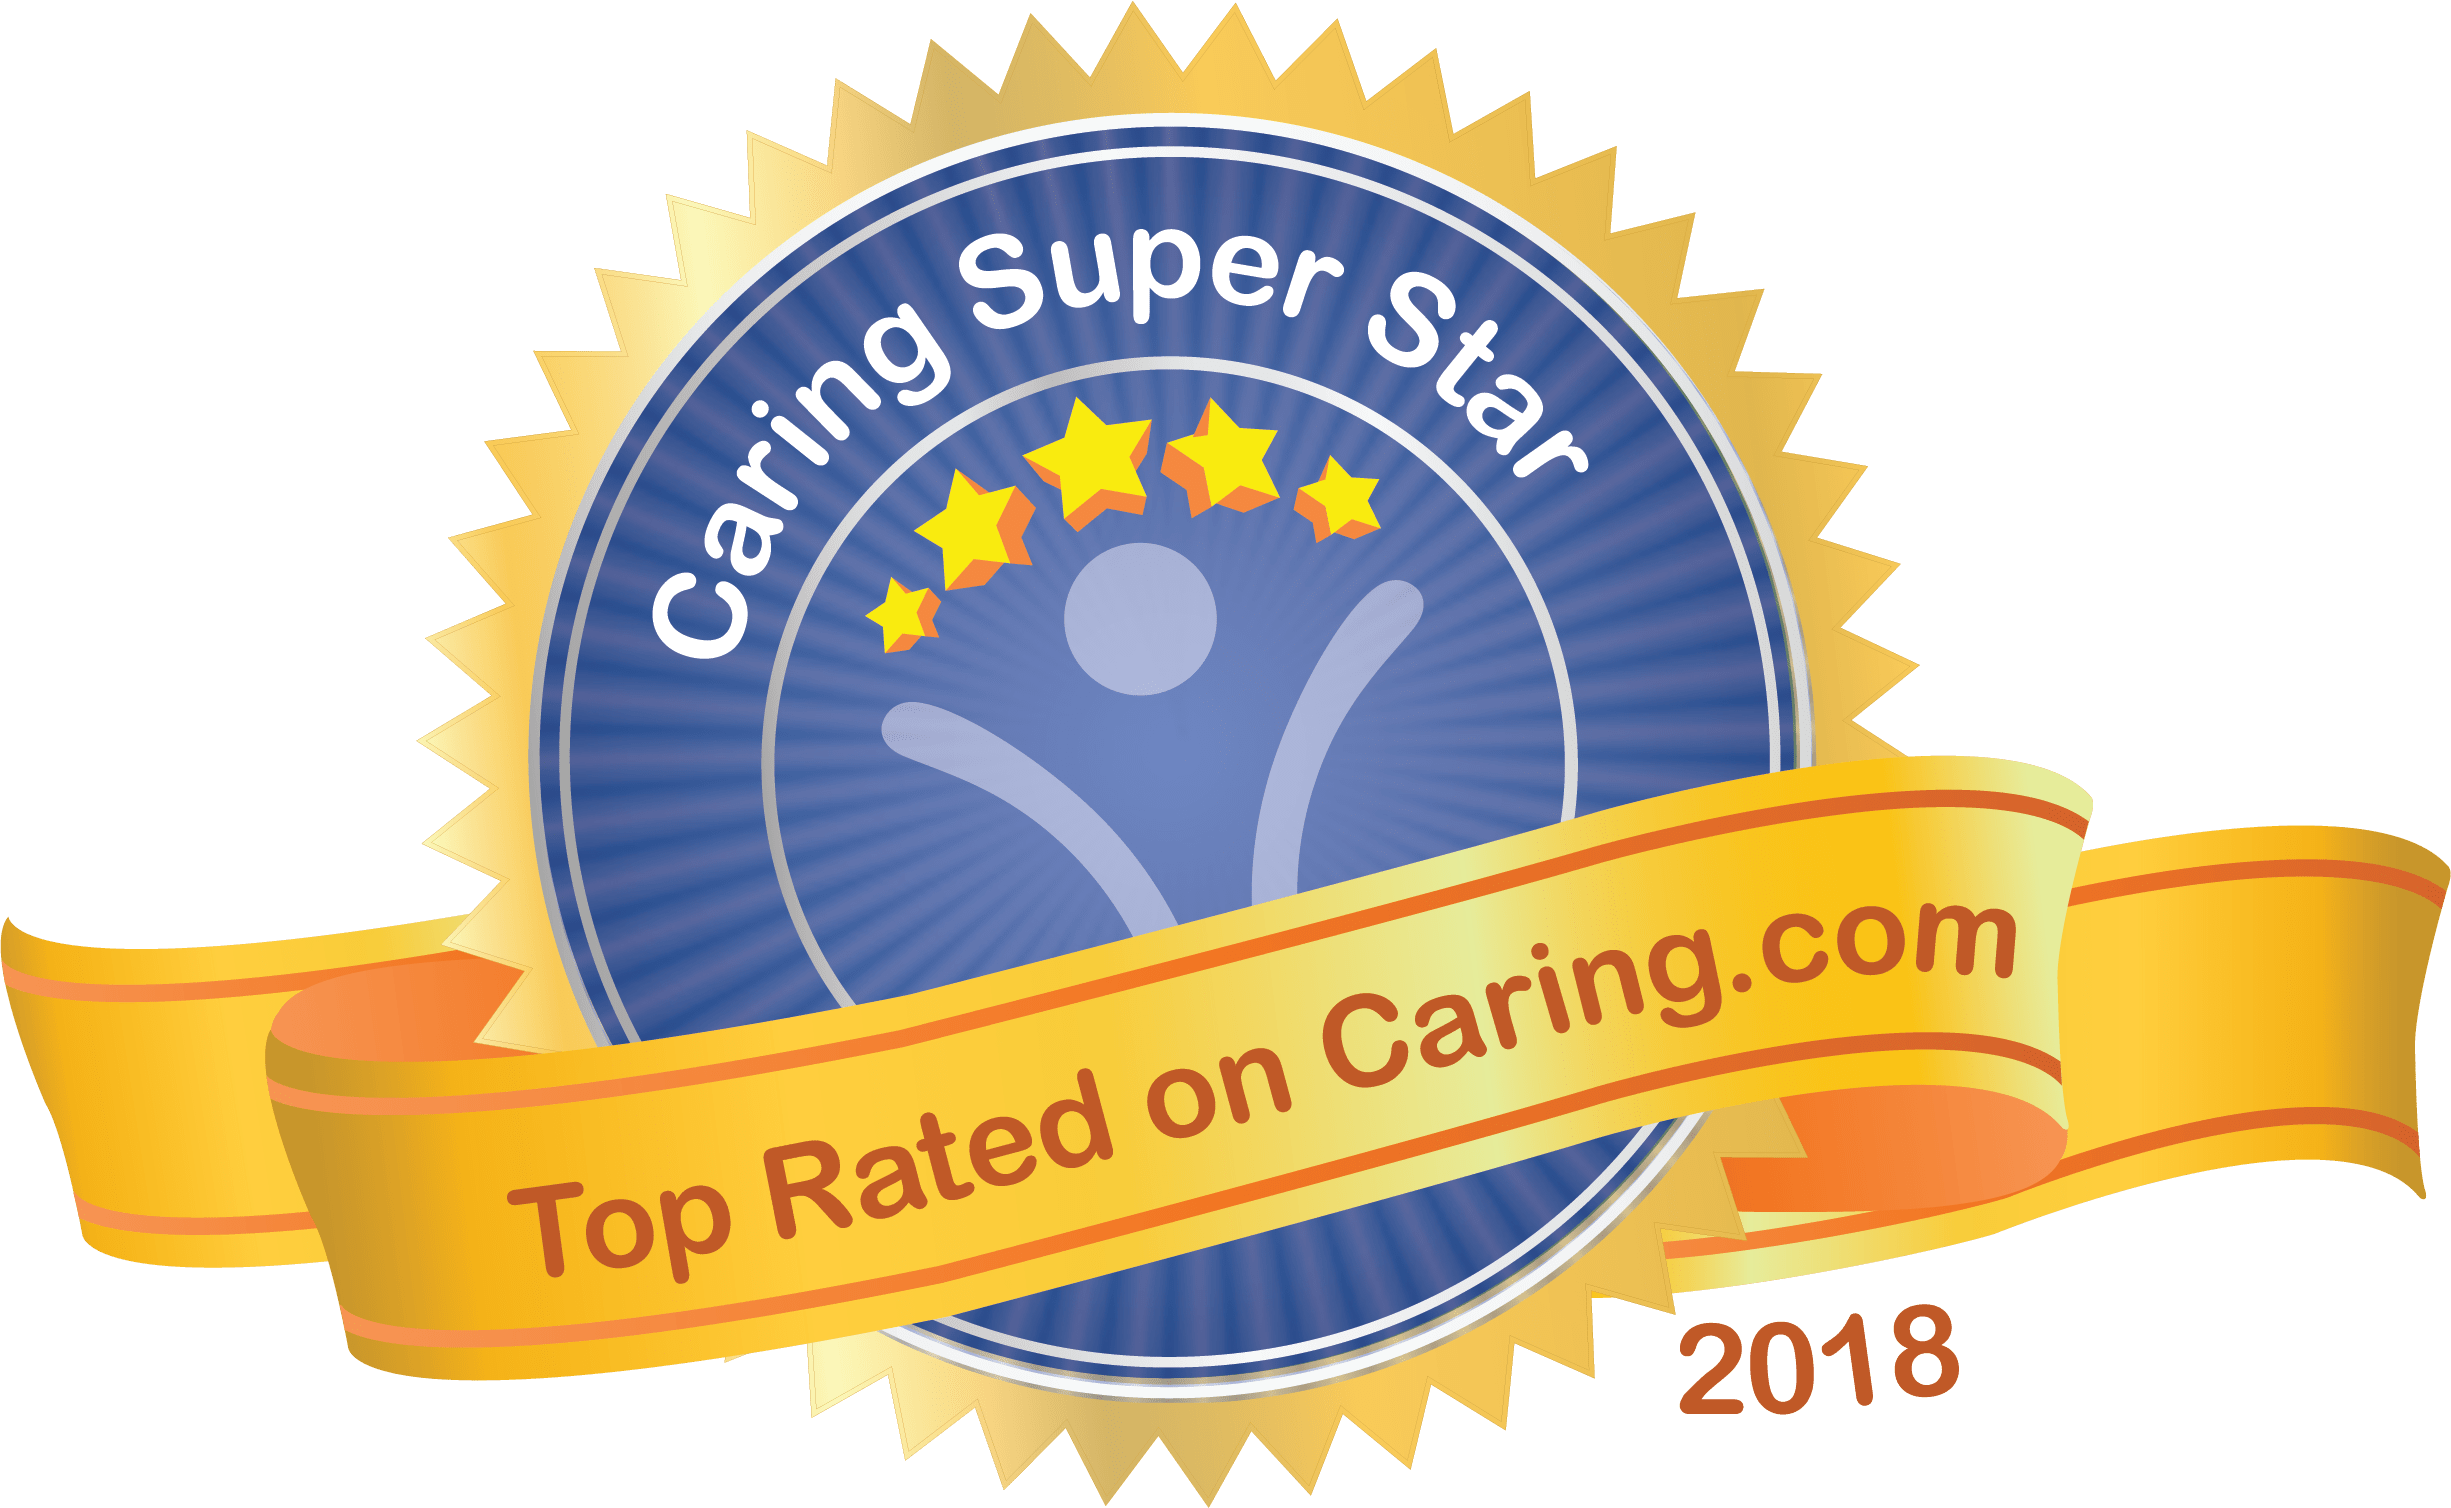 Merrill Gardens at Campbell Top Rated on Caring.com 2018